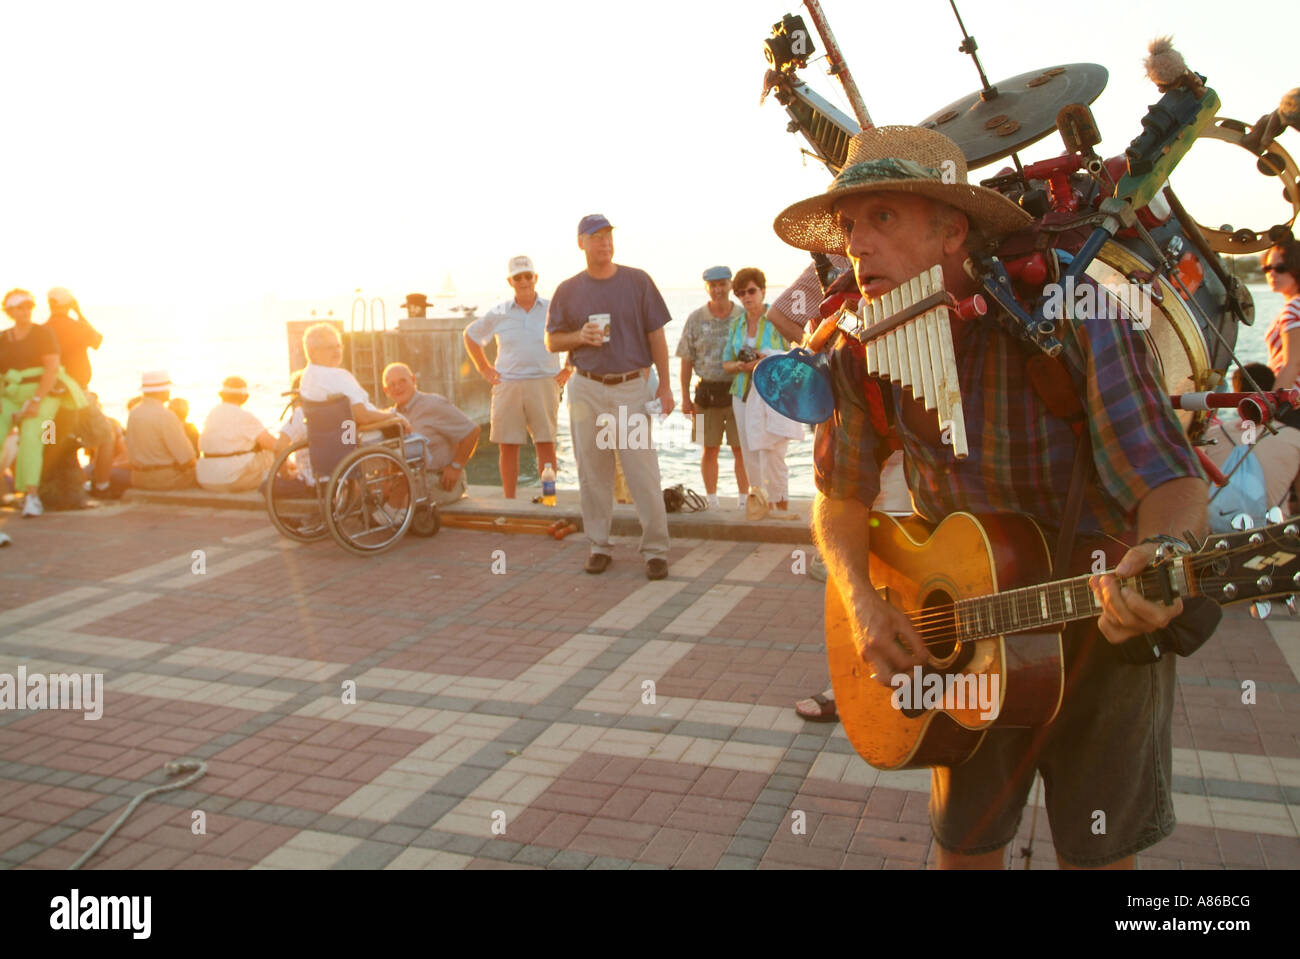 a-one-man-band-performs-at-the-mallory-square-sunset-celebration-key-A86BCG.jpg